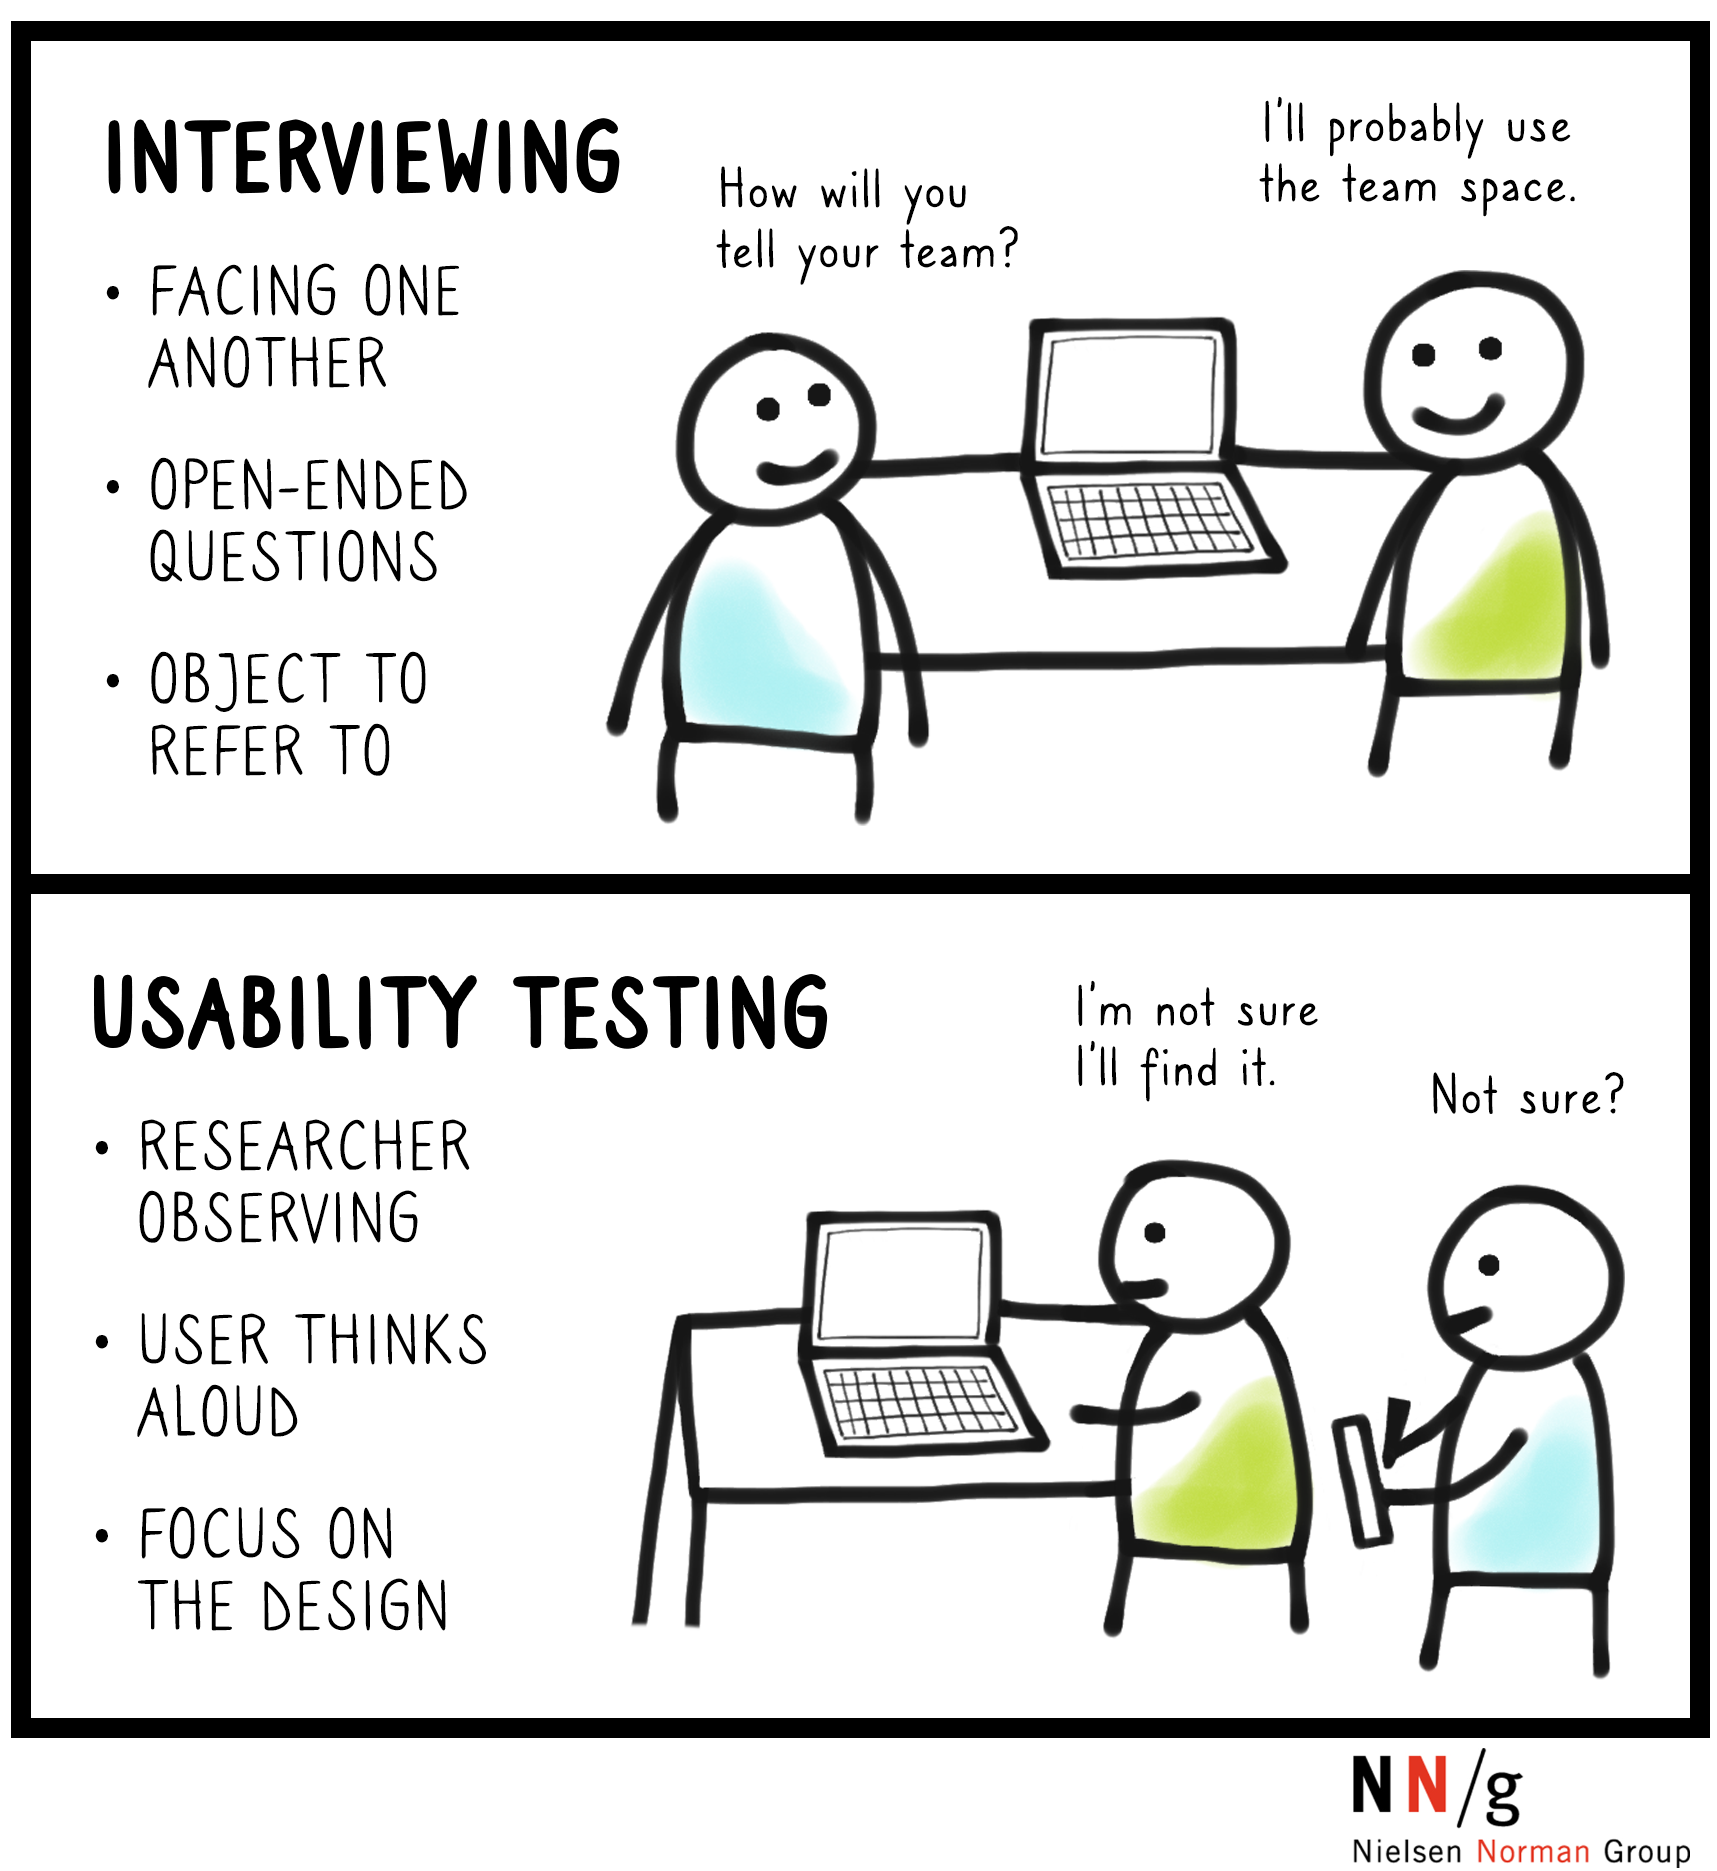 Panel 1, interview: interviewer and user are facing one another, asking onen-ended questions, and has a design to refer to. Panel 2, usability test: researcher is observing, user thinks aloud, focus on the design.